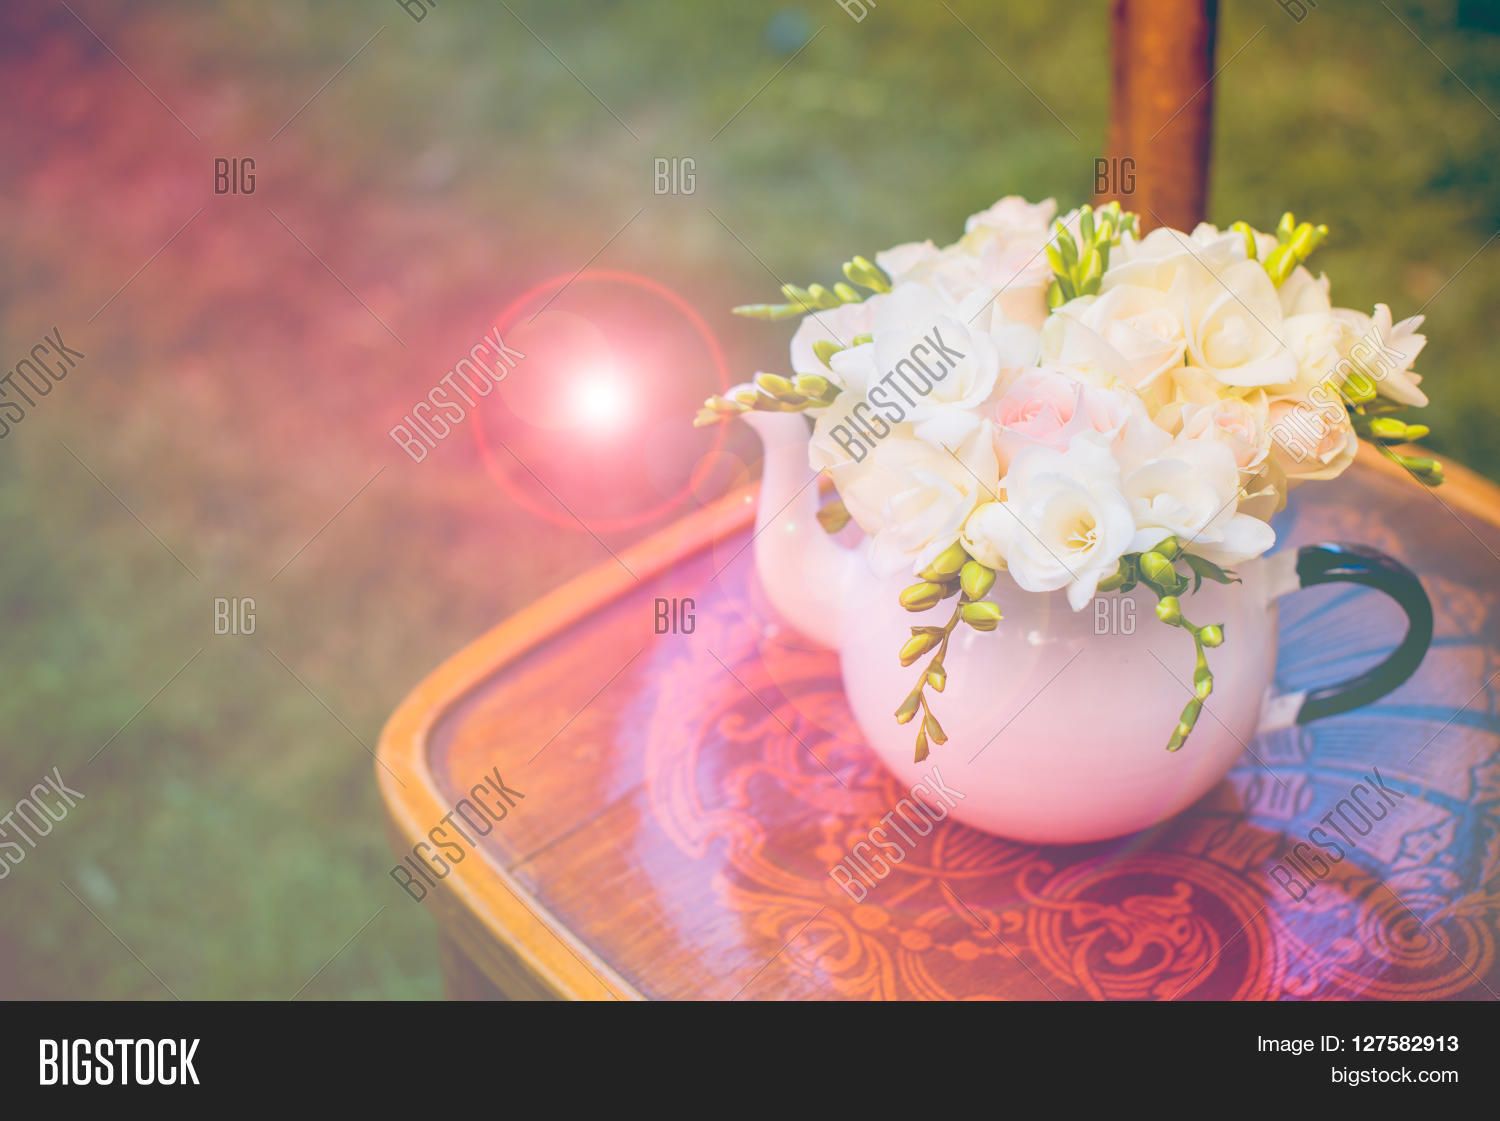 Summer Wedding Party Image & Photo (Free Trial) | Bigstock